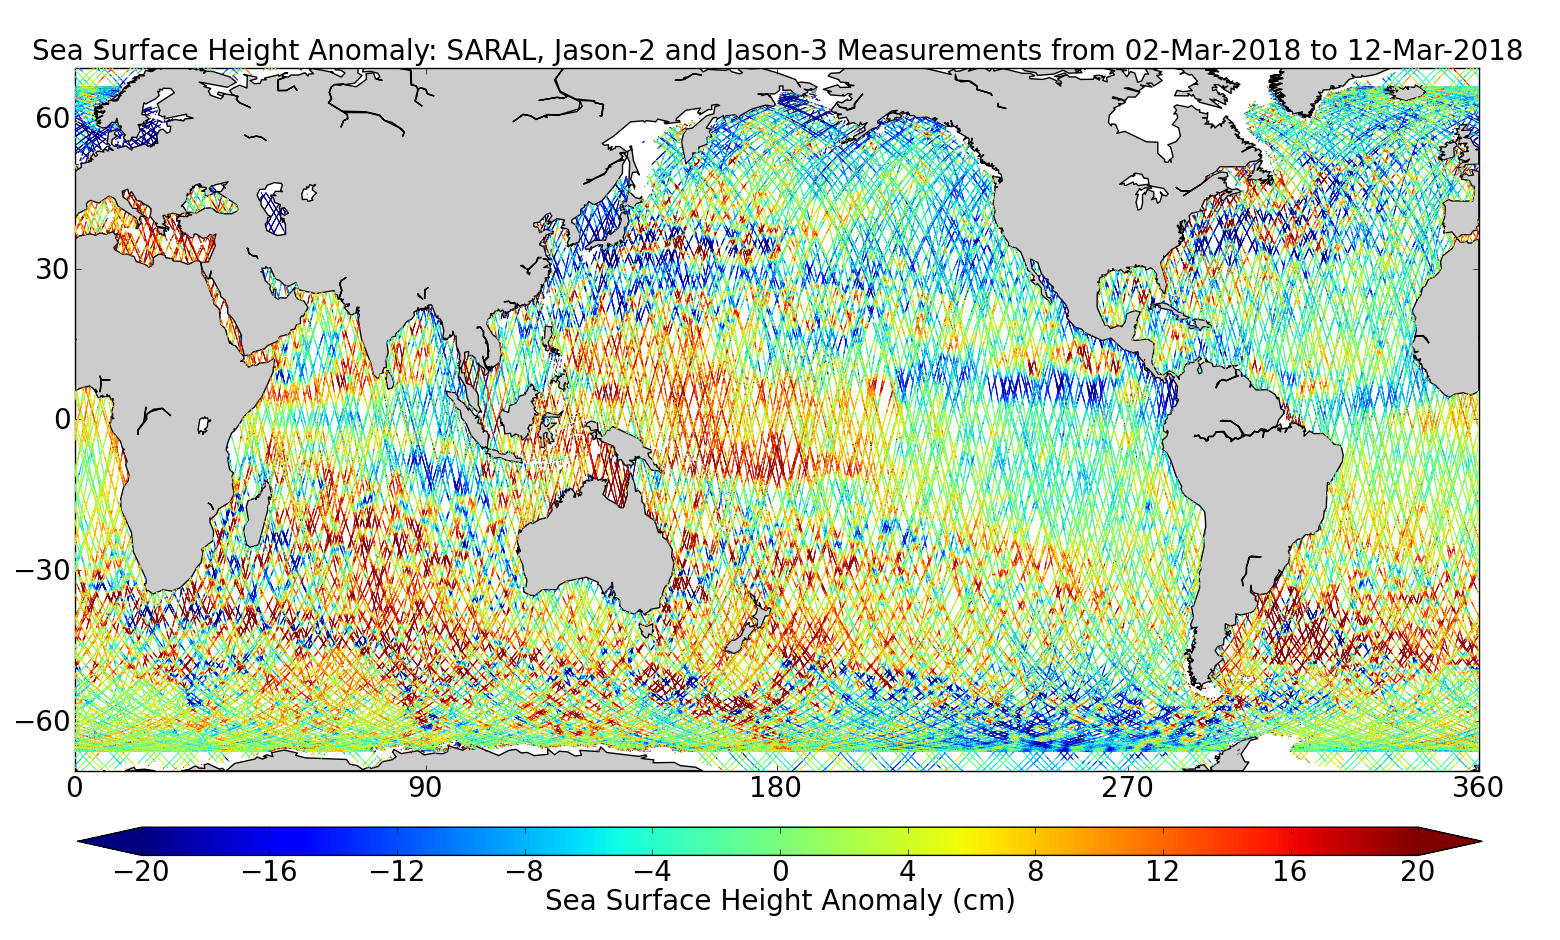 Sea Surface Height Anomaly: SARAL, Jason-2 and Jason-3 Measurements from 02-Mar-2018 to 12-Mar-2018